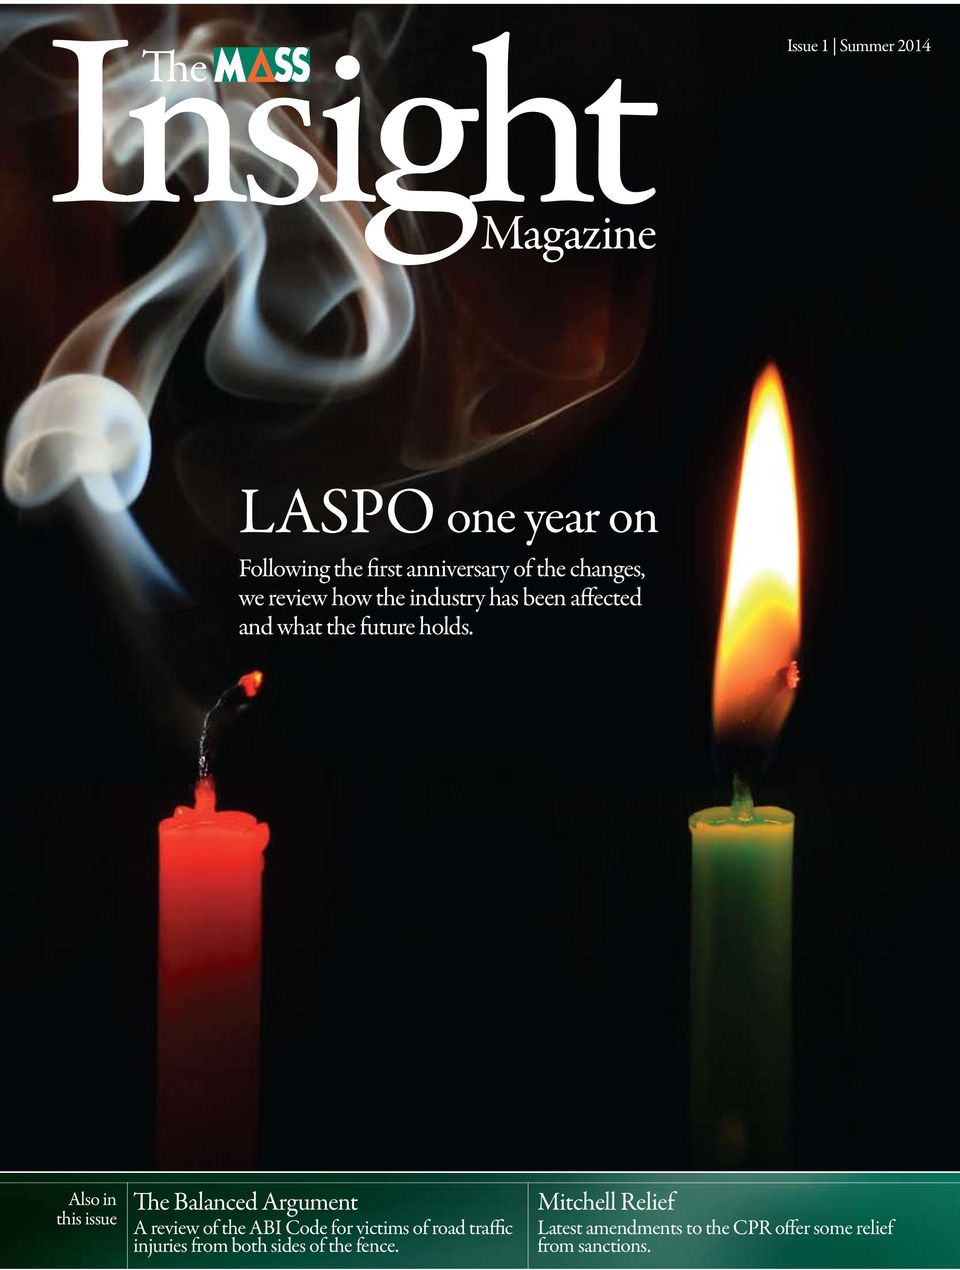 Also in this issue The Balanced Argument A review of the ABI Code for victims of road traffic